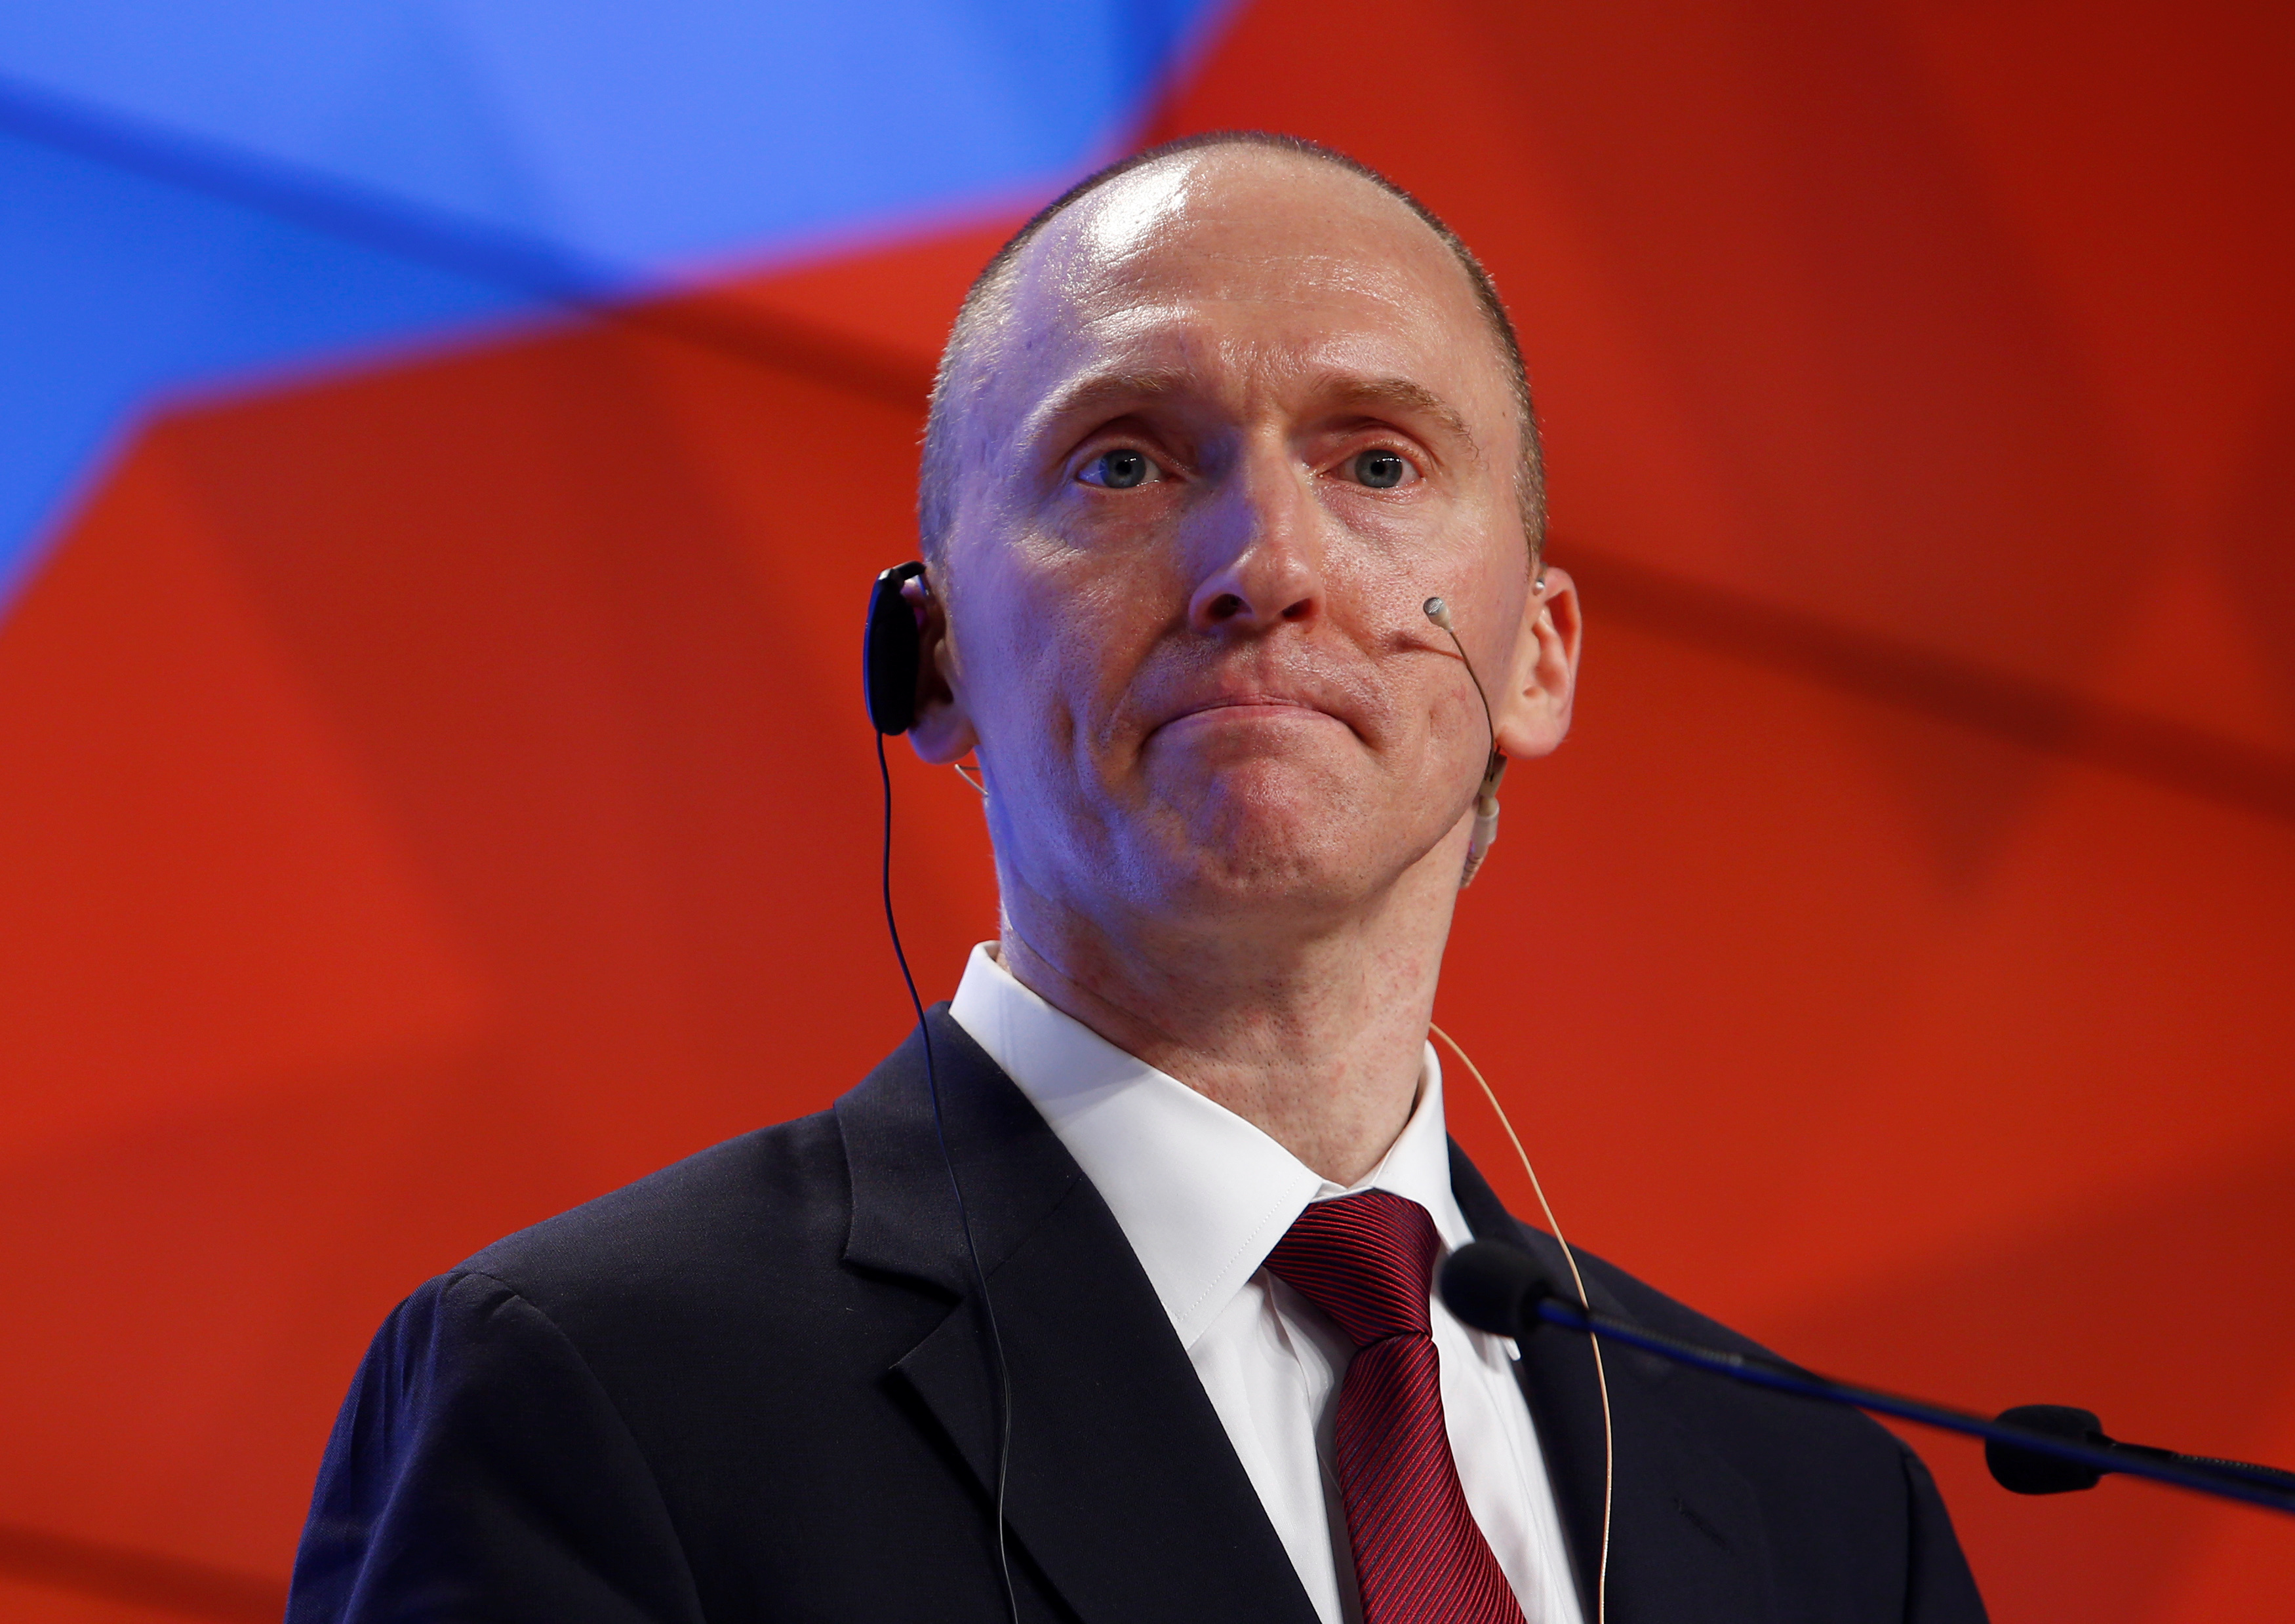 One-time advisor of U.S. president-elect Donald Trump Carter Page addresses the audience during a presentation in Moscow, Russia, December 12, 2016. REUTERS/Sergei Karpukhin - RC1F4BDC7F00